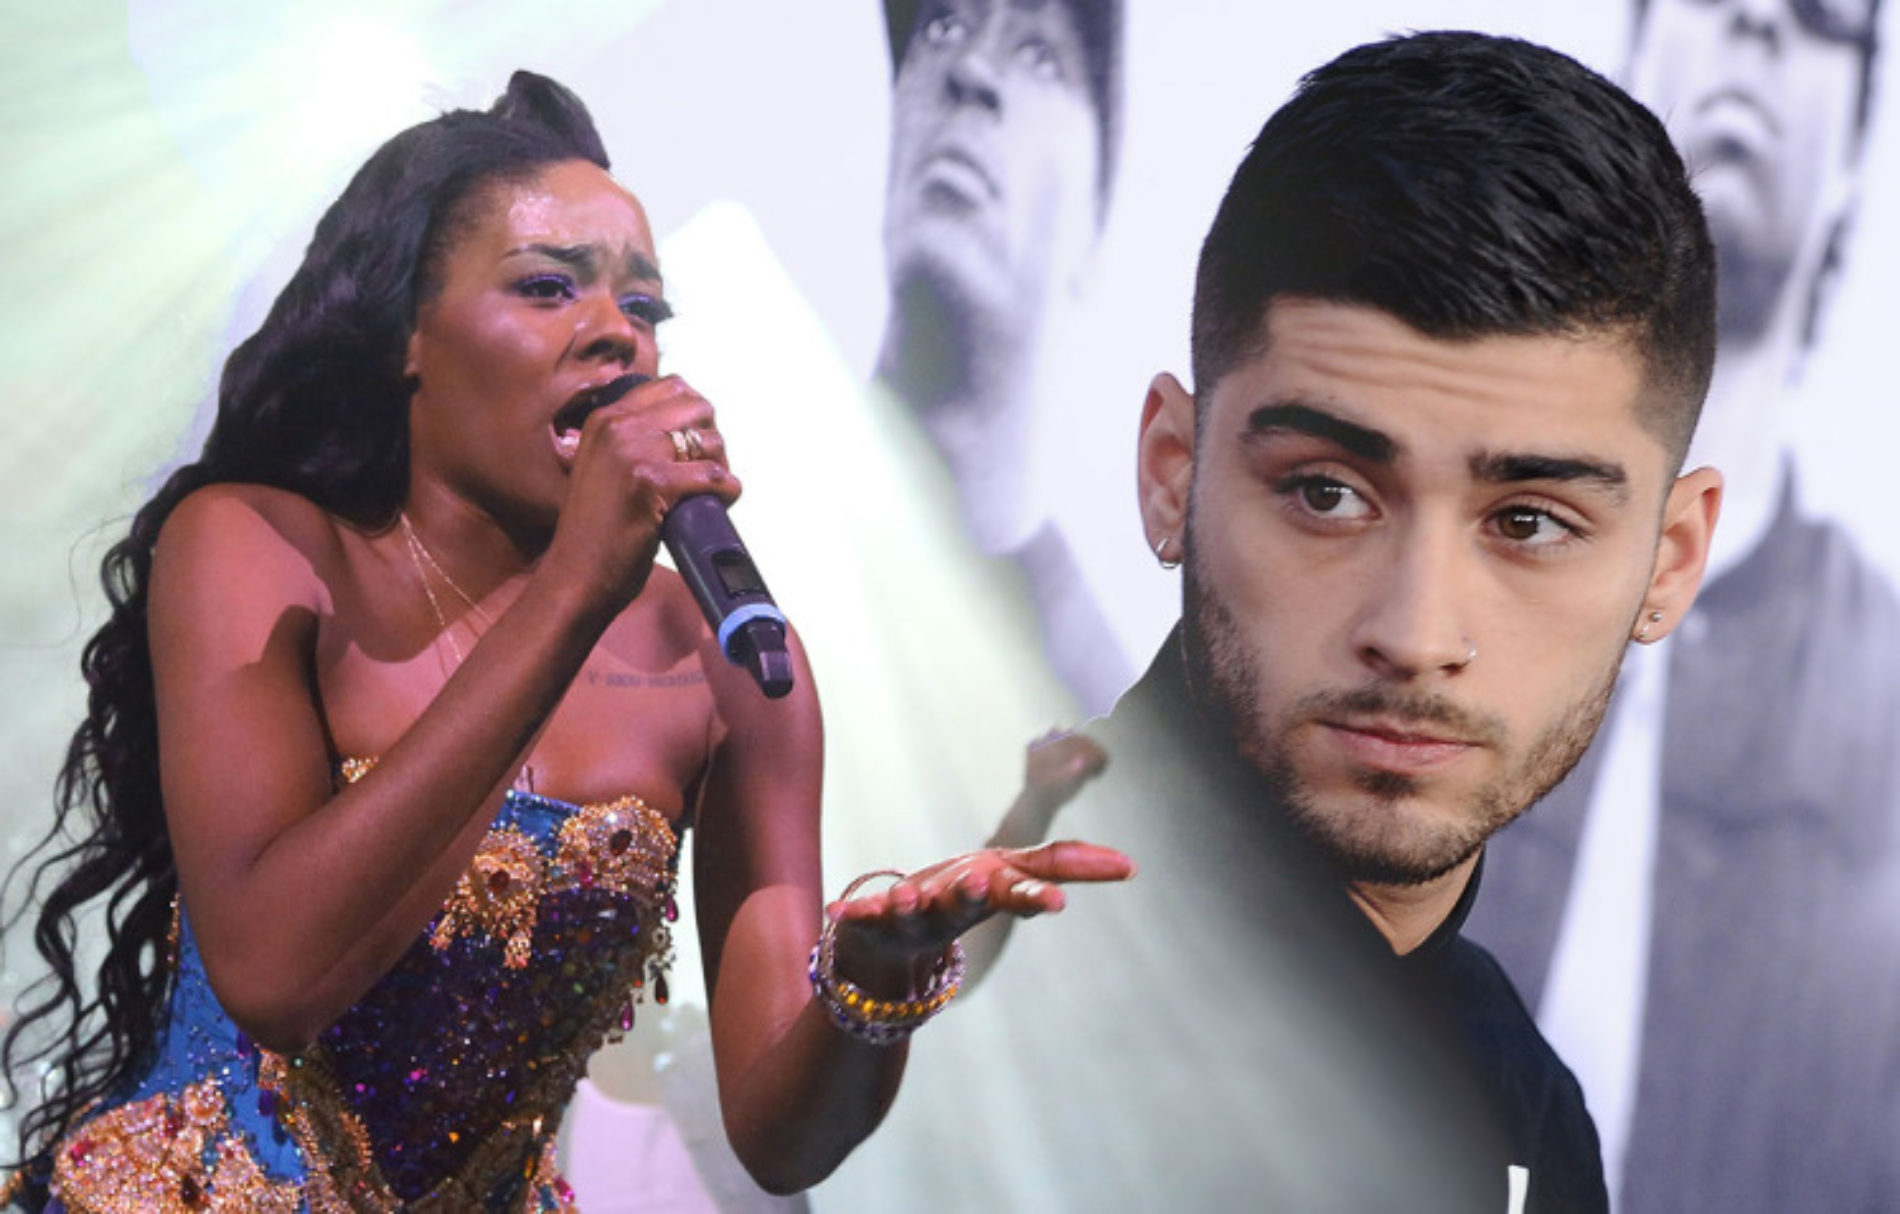 Azealia Banks attacks Zayn Malik again, calls him a trans man